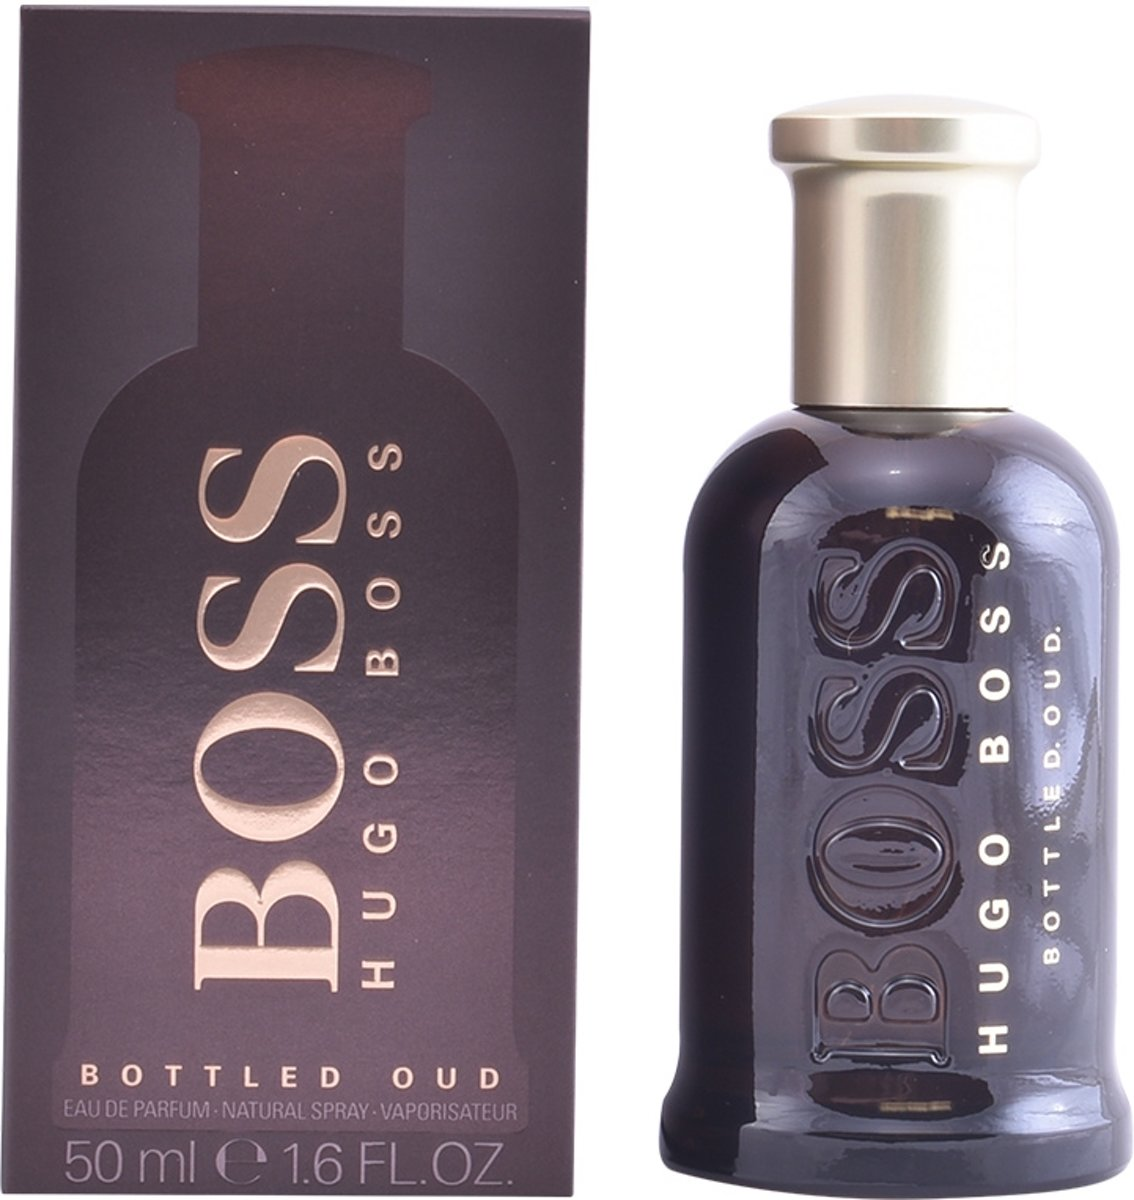 Hugo Boss Bottled Oud - 50ml - Eau de parfum